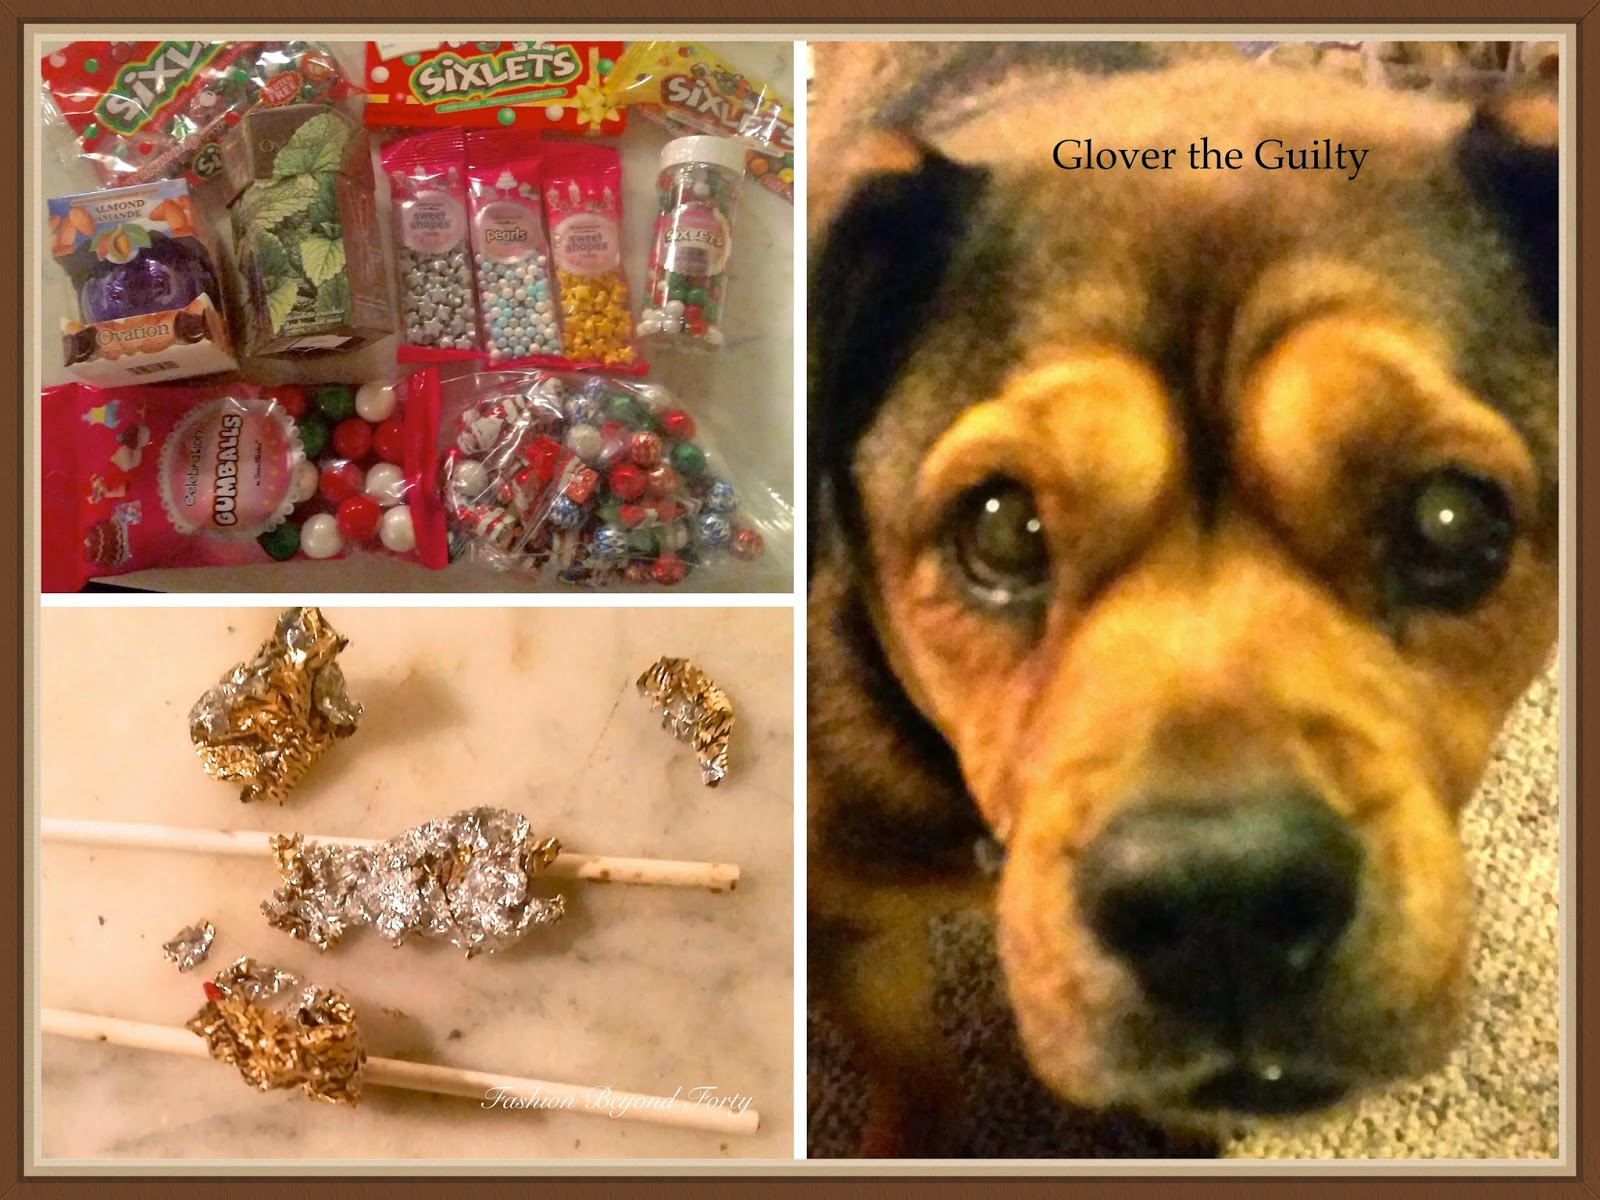 Fashion Beyond Forty Happiness Is The Dog Gets The Prize SweetWorks